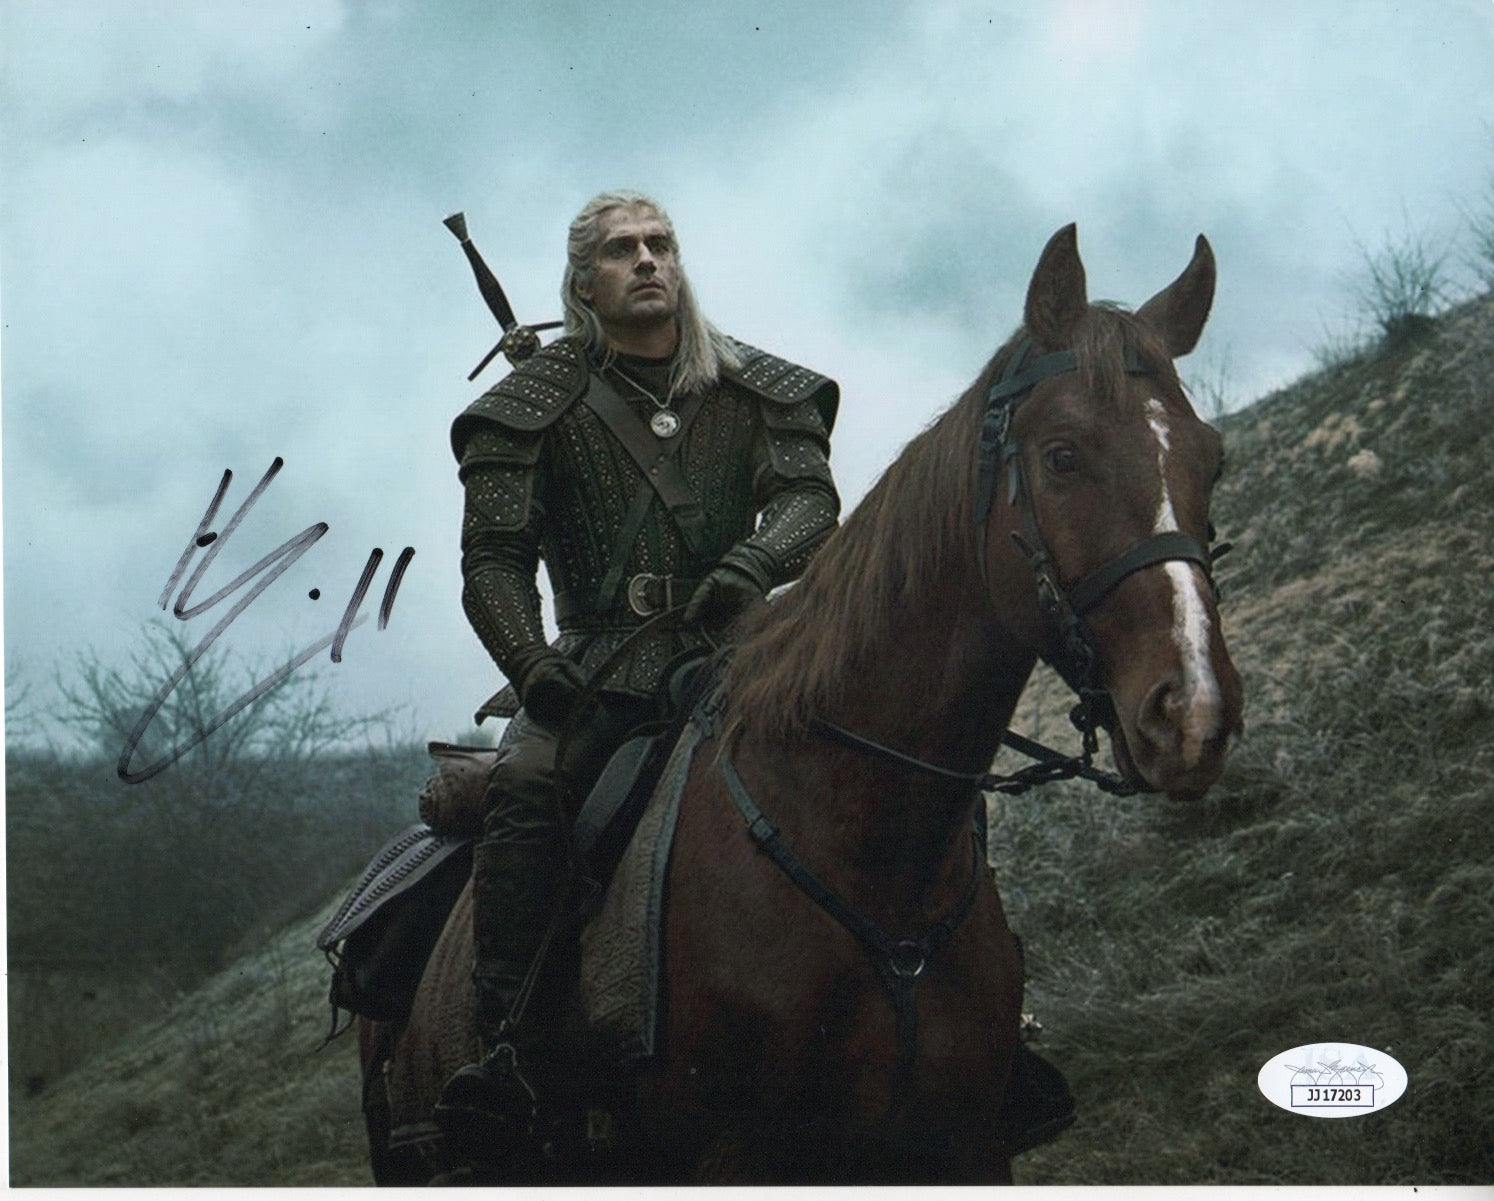 Henry Cavill The Witcher Signed Autograph 8x10 Photo JSA Authentic - Outlaw Hobbies Authentic Autographs